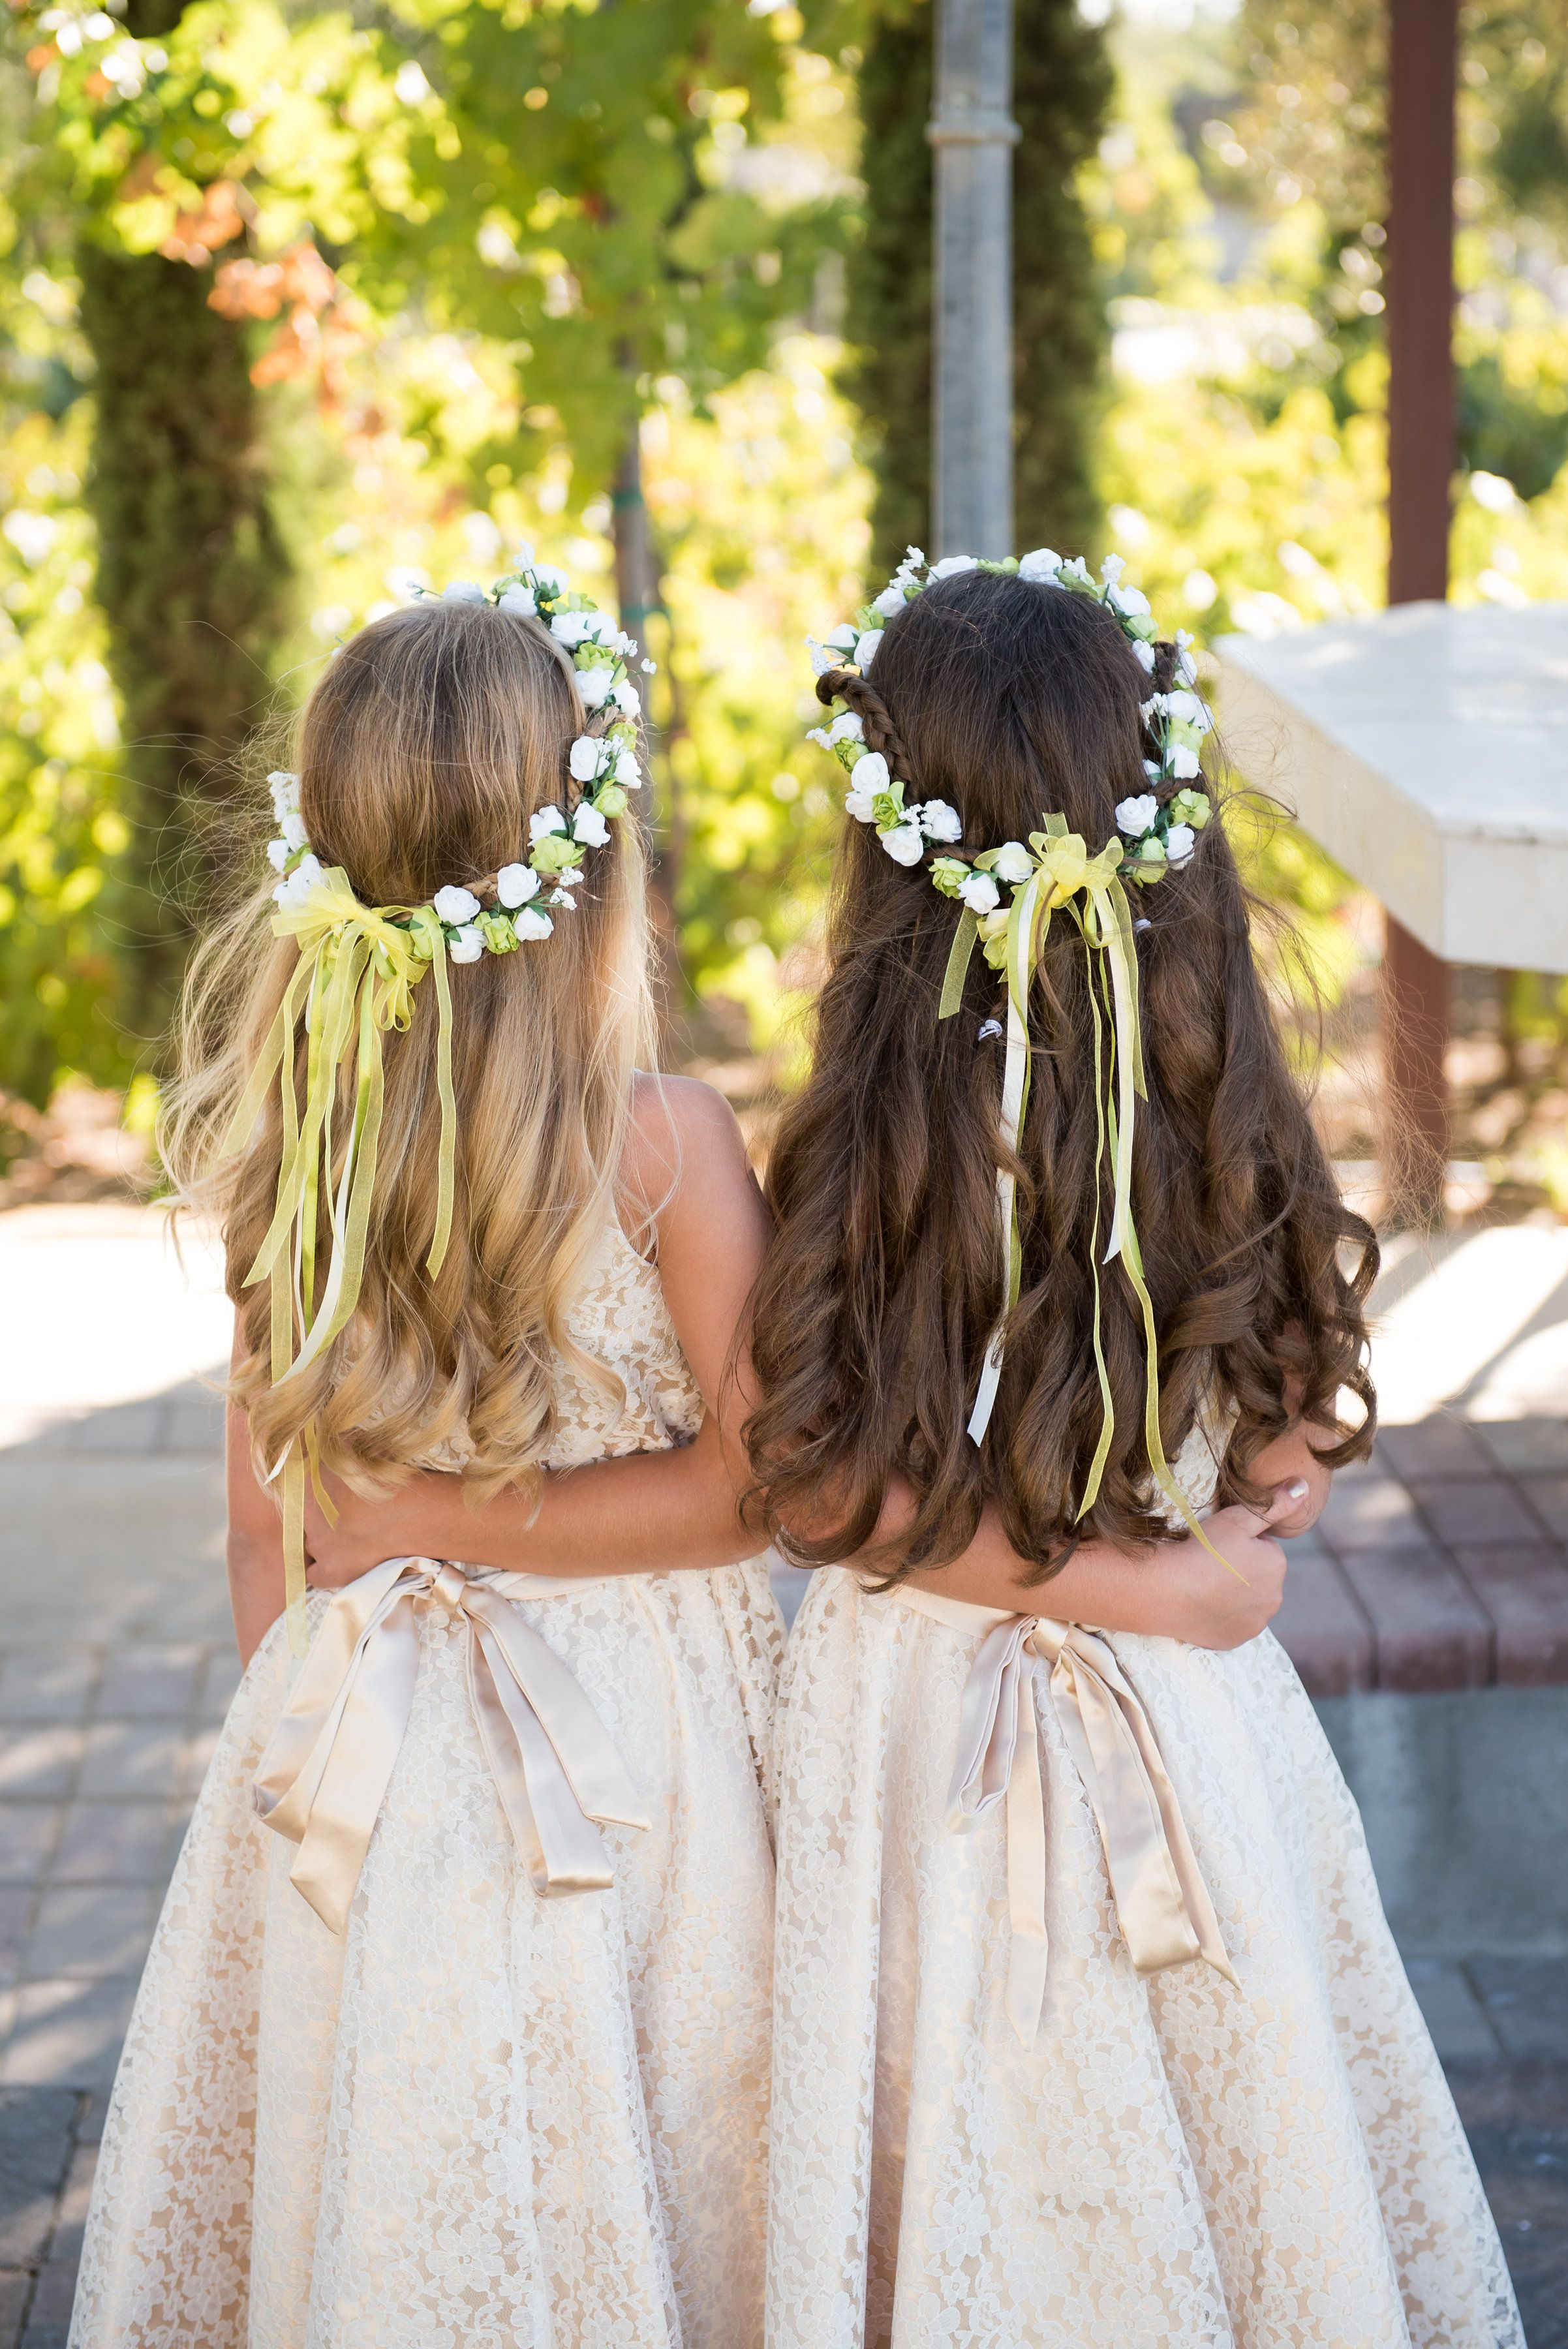 Adorable diy flower girl crown wreath make halo wreath by wrapping adorable diy flower girl crown wreath make halo wreath by wrapping floral wire with floral izmirmasajfo